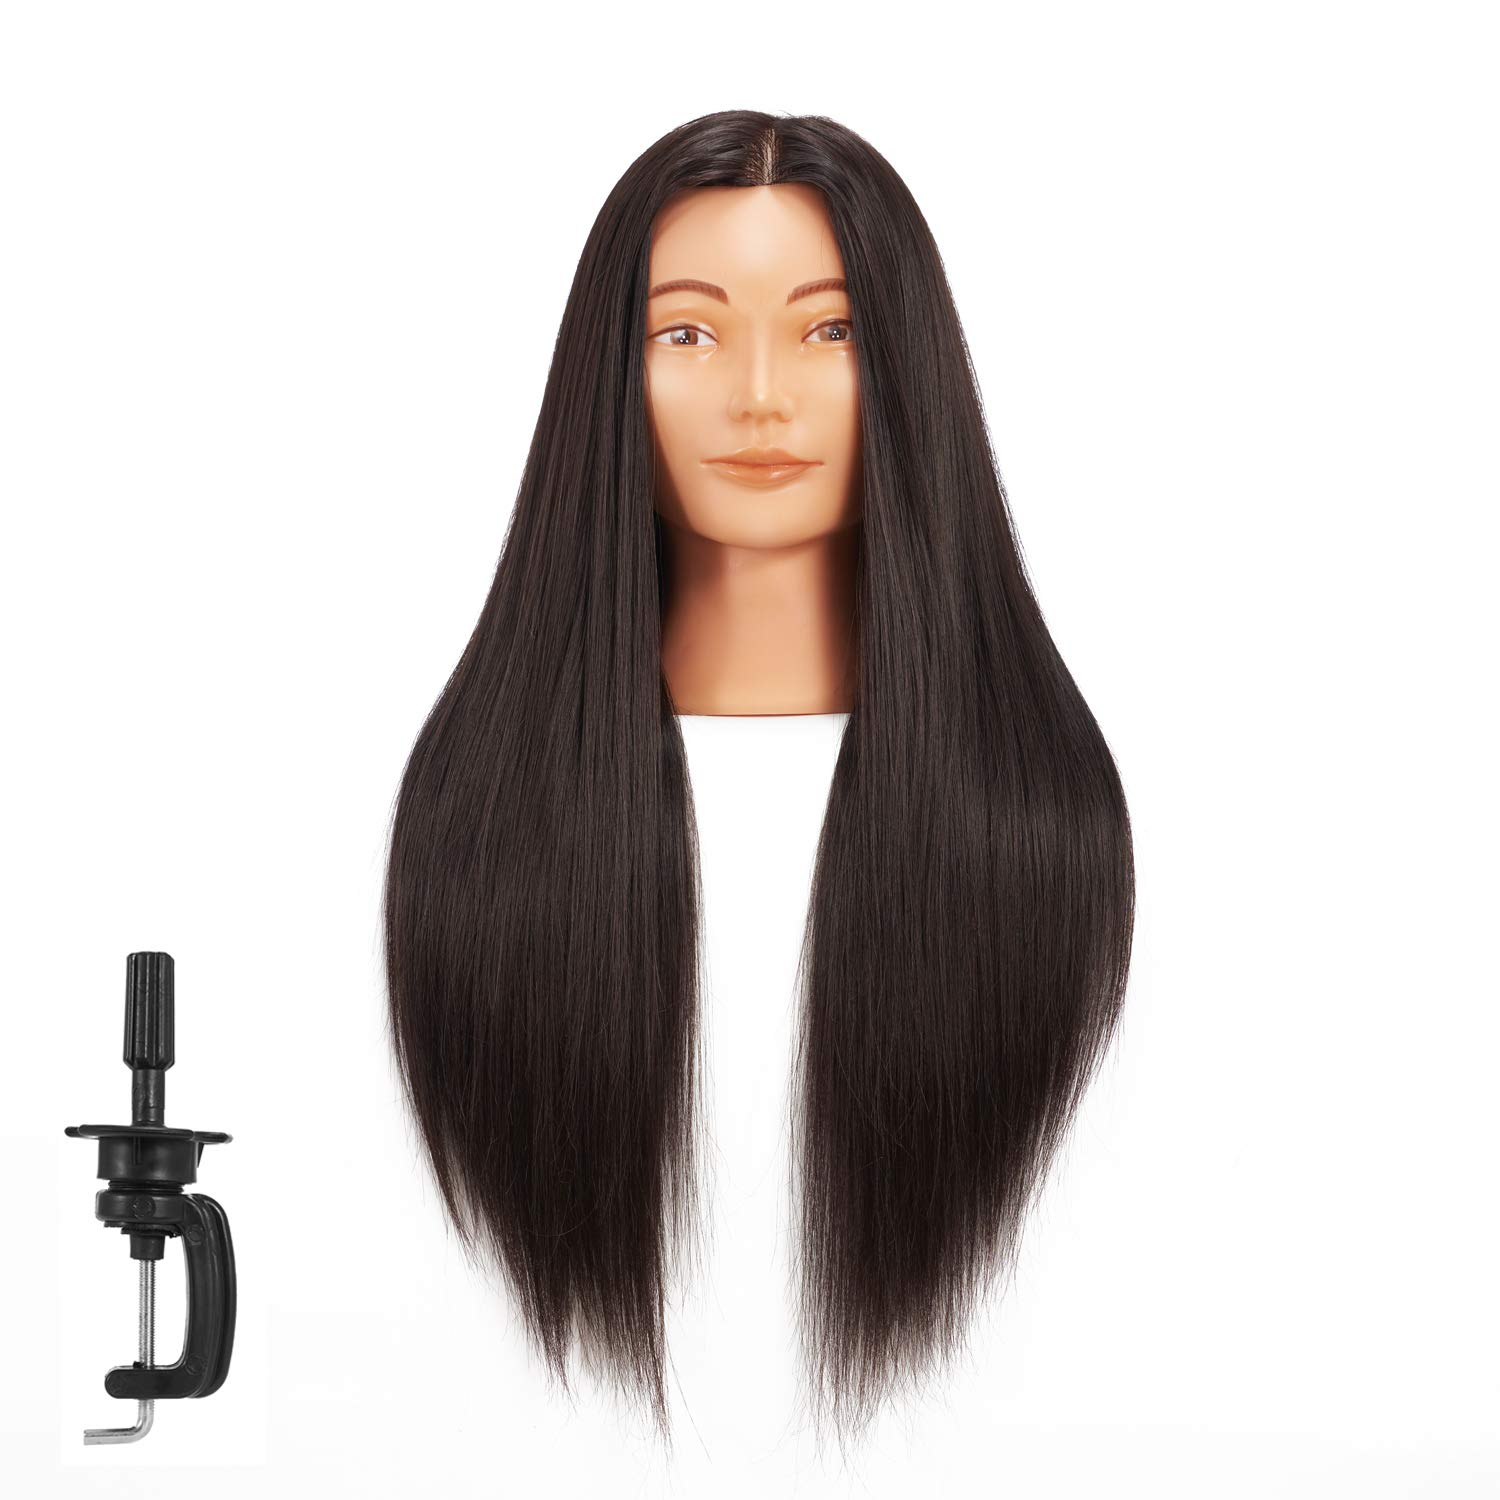 Amazon Com Hairginkgo Mannequin Head 26 28 Super Long Synthetic Fiber Hair Manikin Head Styling Hairdresser Training Head Cosmetology Doll Head For Cutting Braiding Practice With Clamp 92019d0220 Beauty